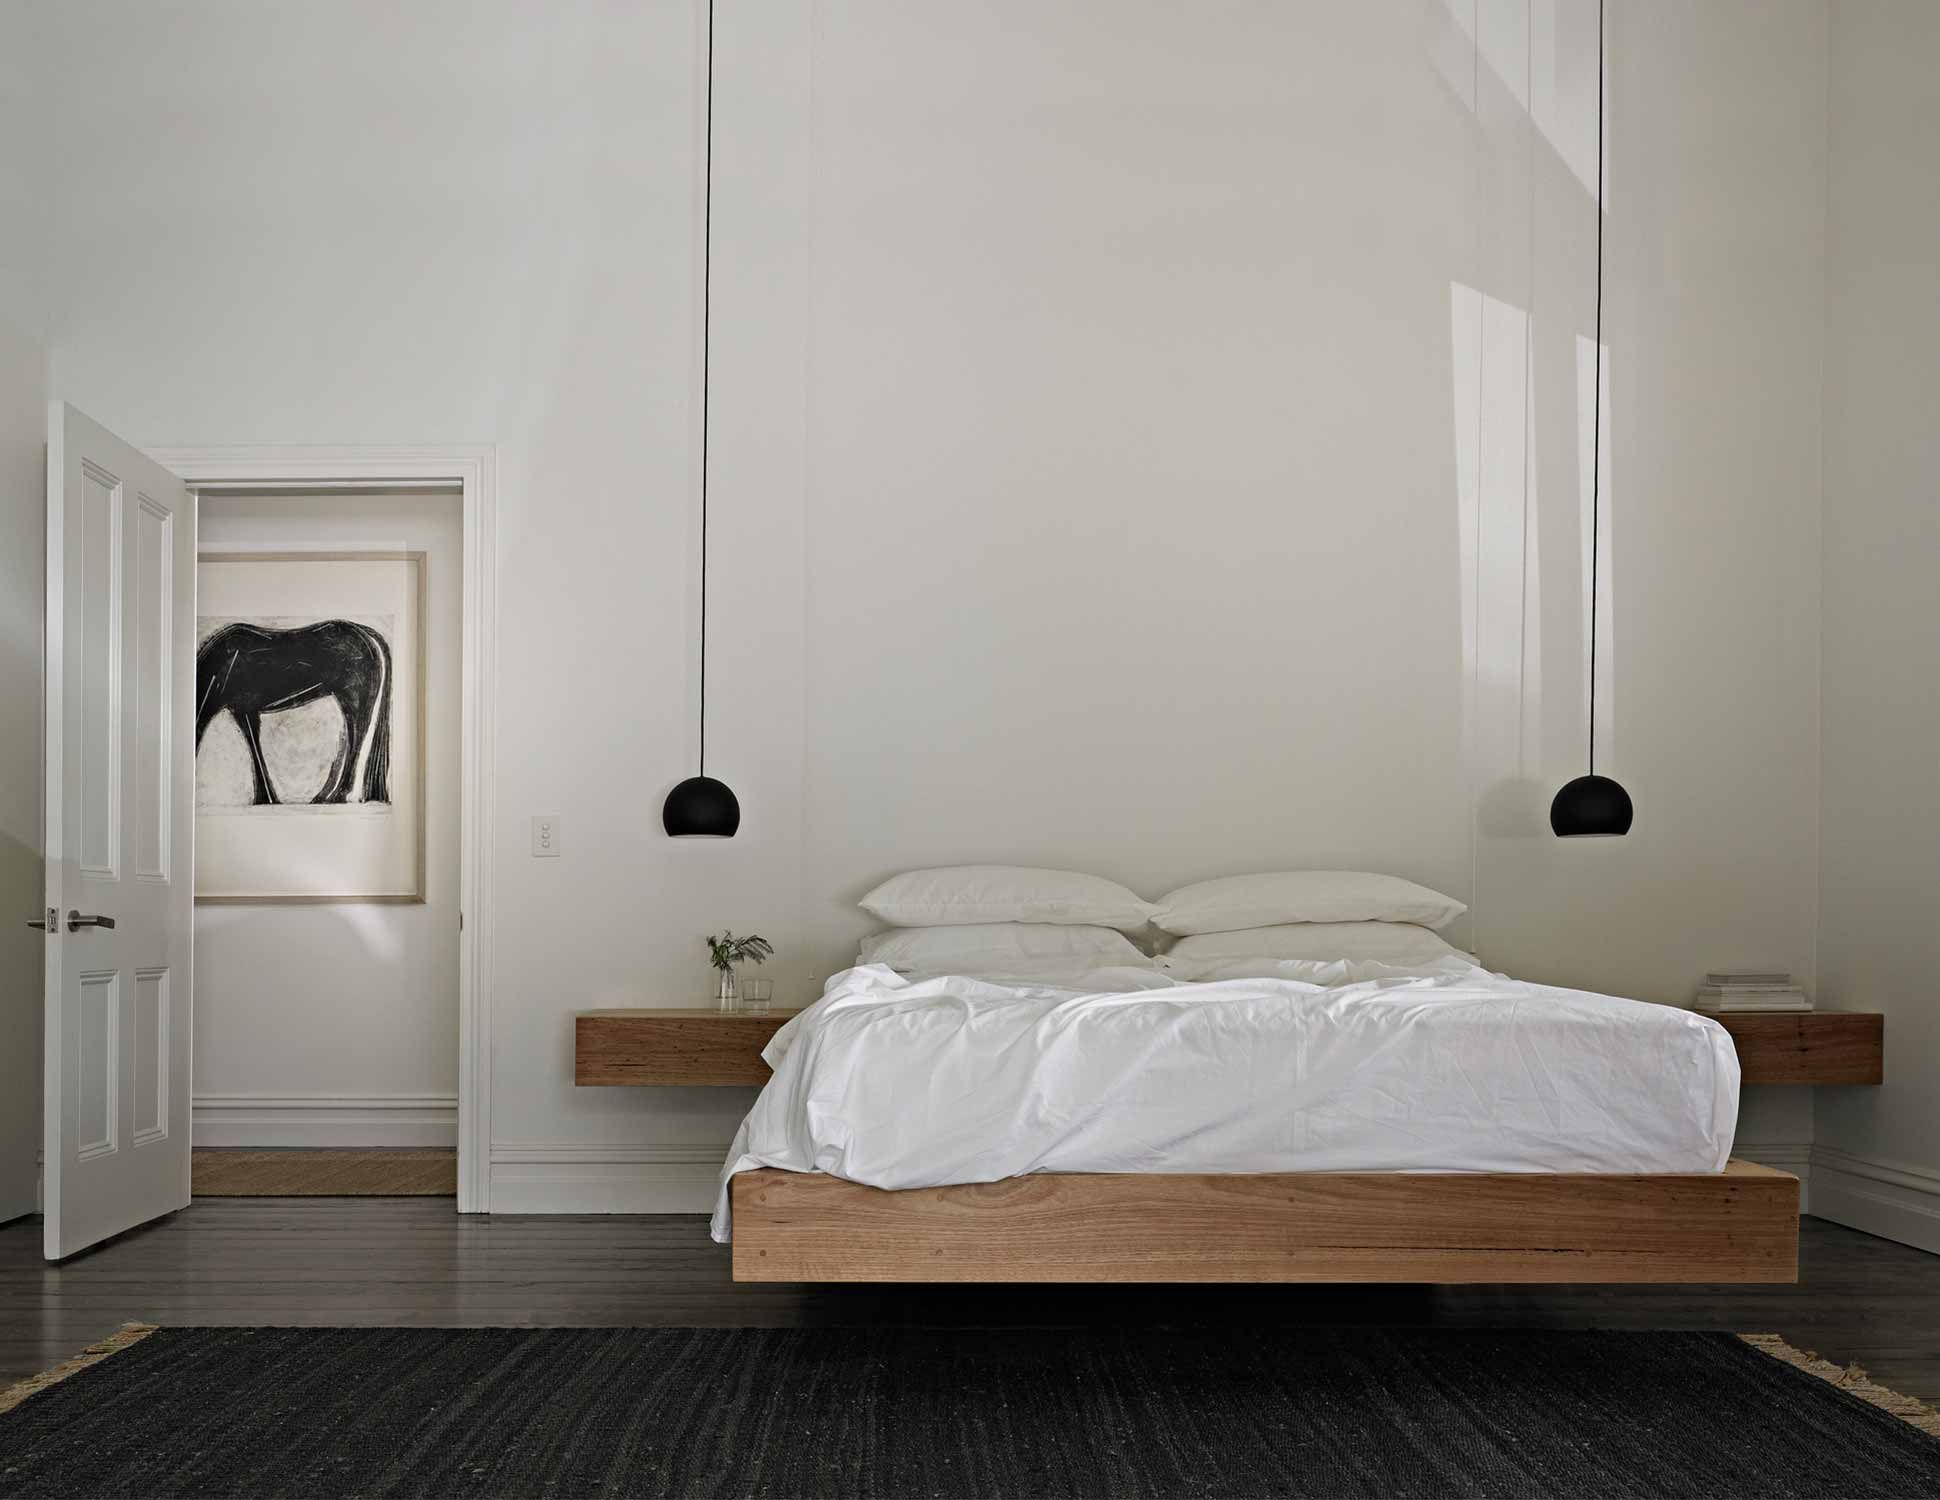 minimal bedroom hazeldean into white pin with doorway studio japanese view tranquil bed style